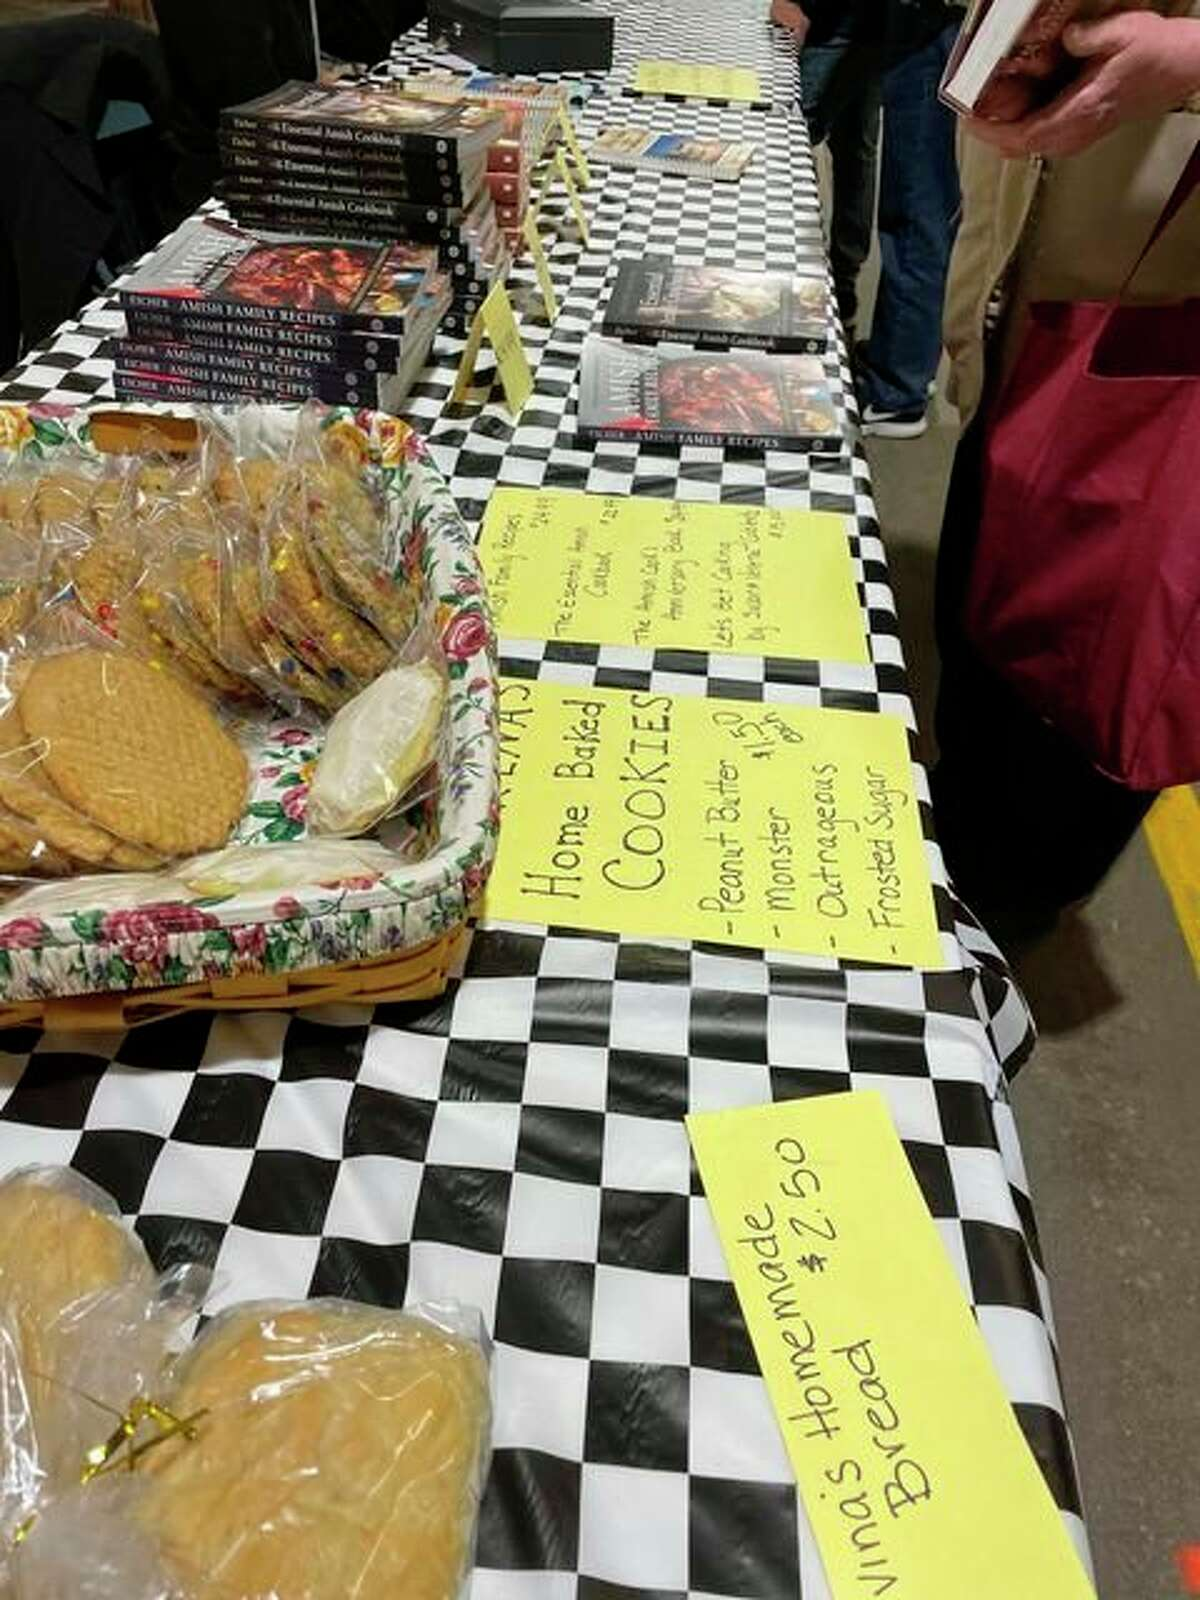 Lovina appreciated the opportunity to do a book signing and share some baked goods at the Plain and Simple Craft Fair in Shipshewana, Indiana. (Courtesy photo)